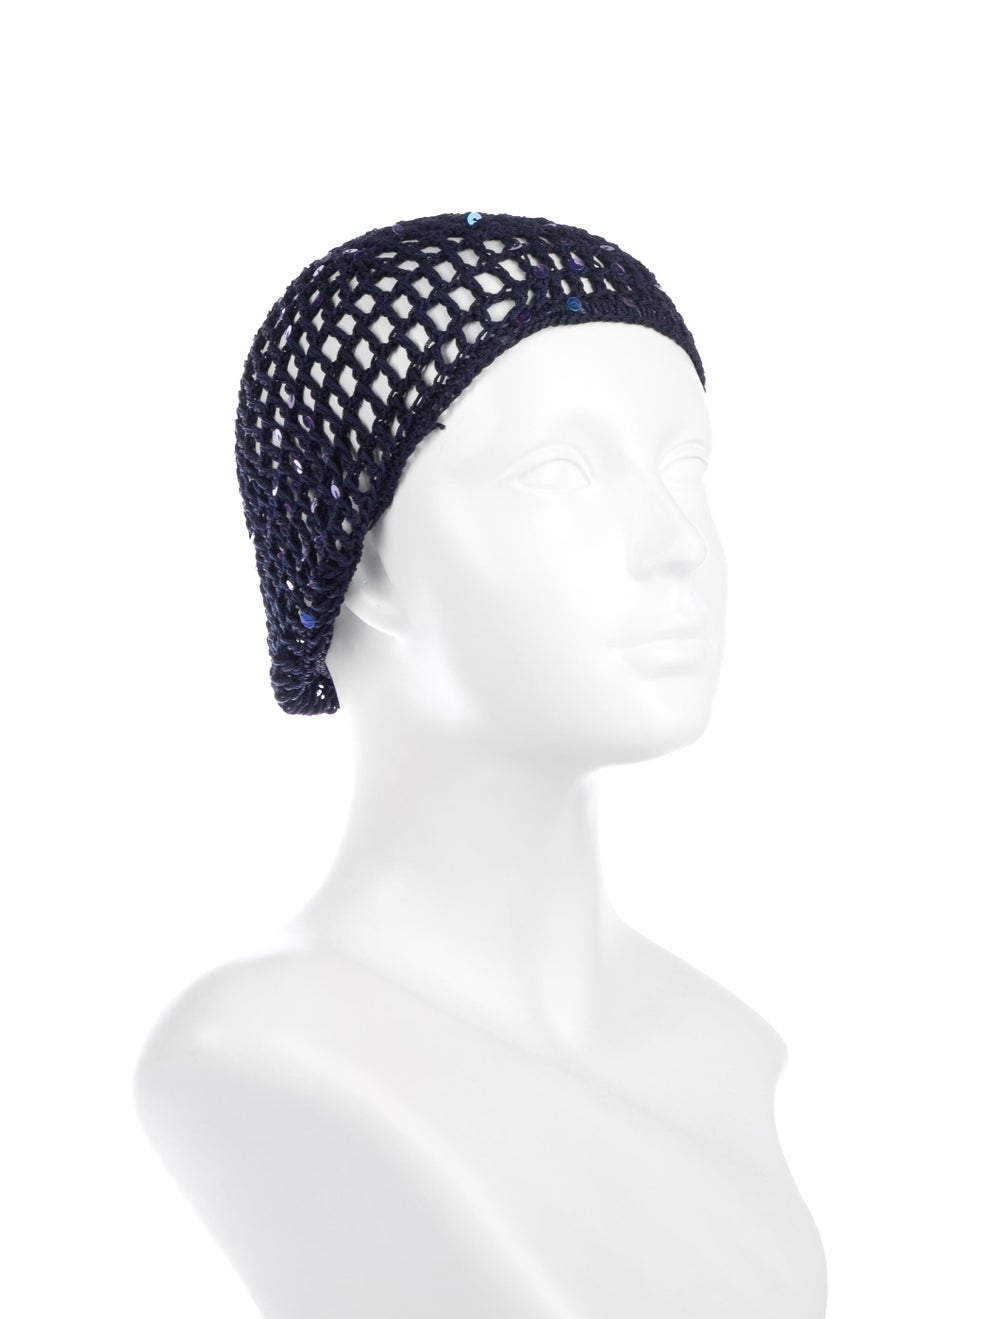 Miguelina Sequins Knit Beanie Navy - image 3